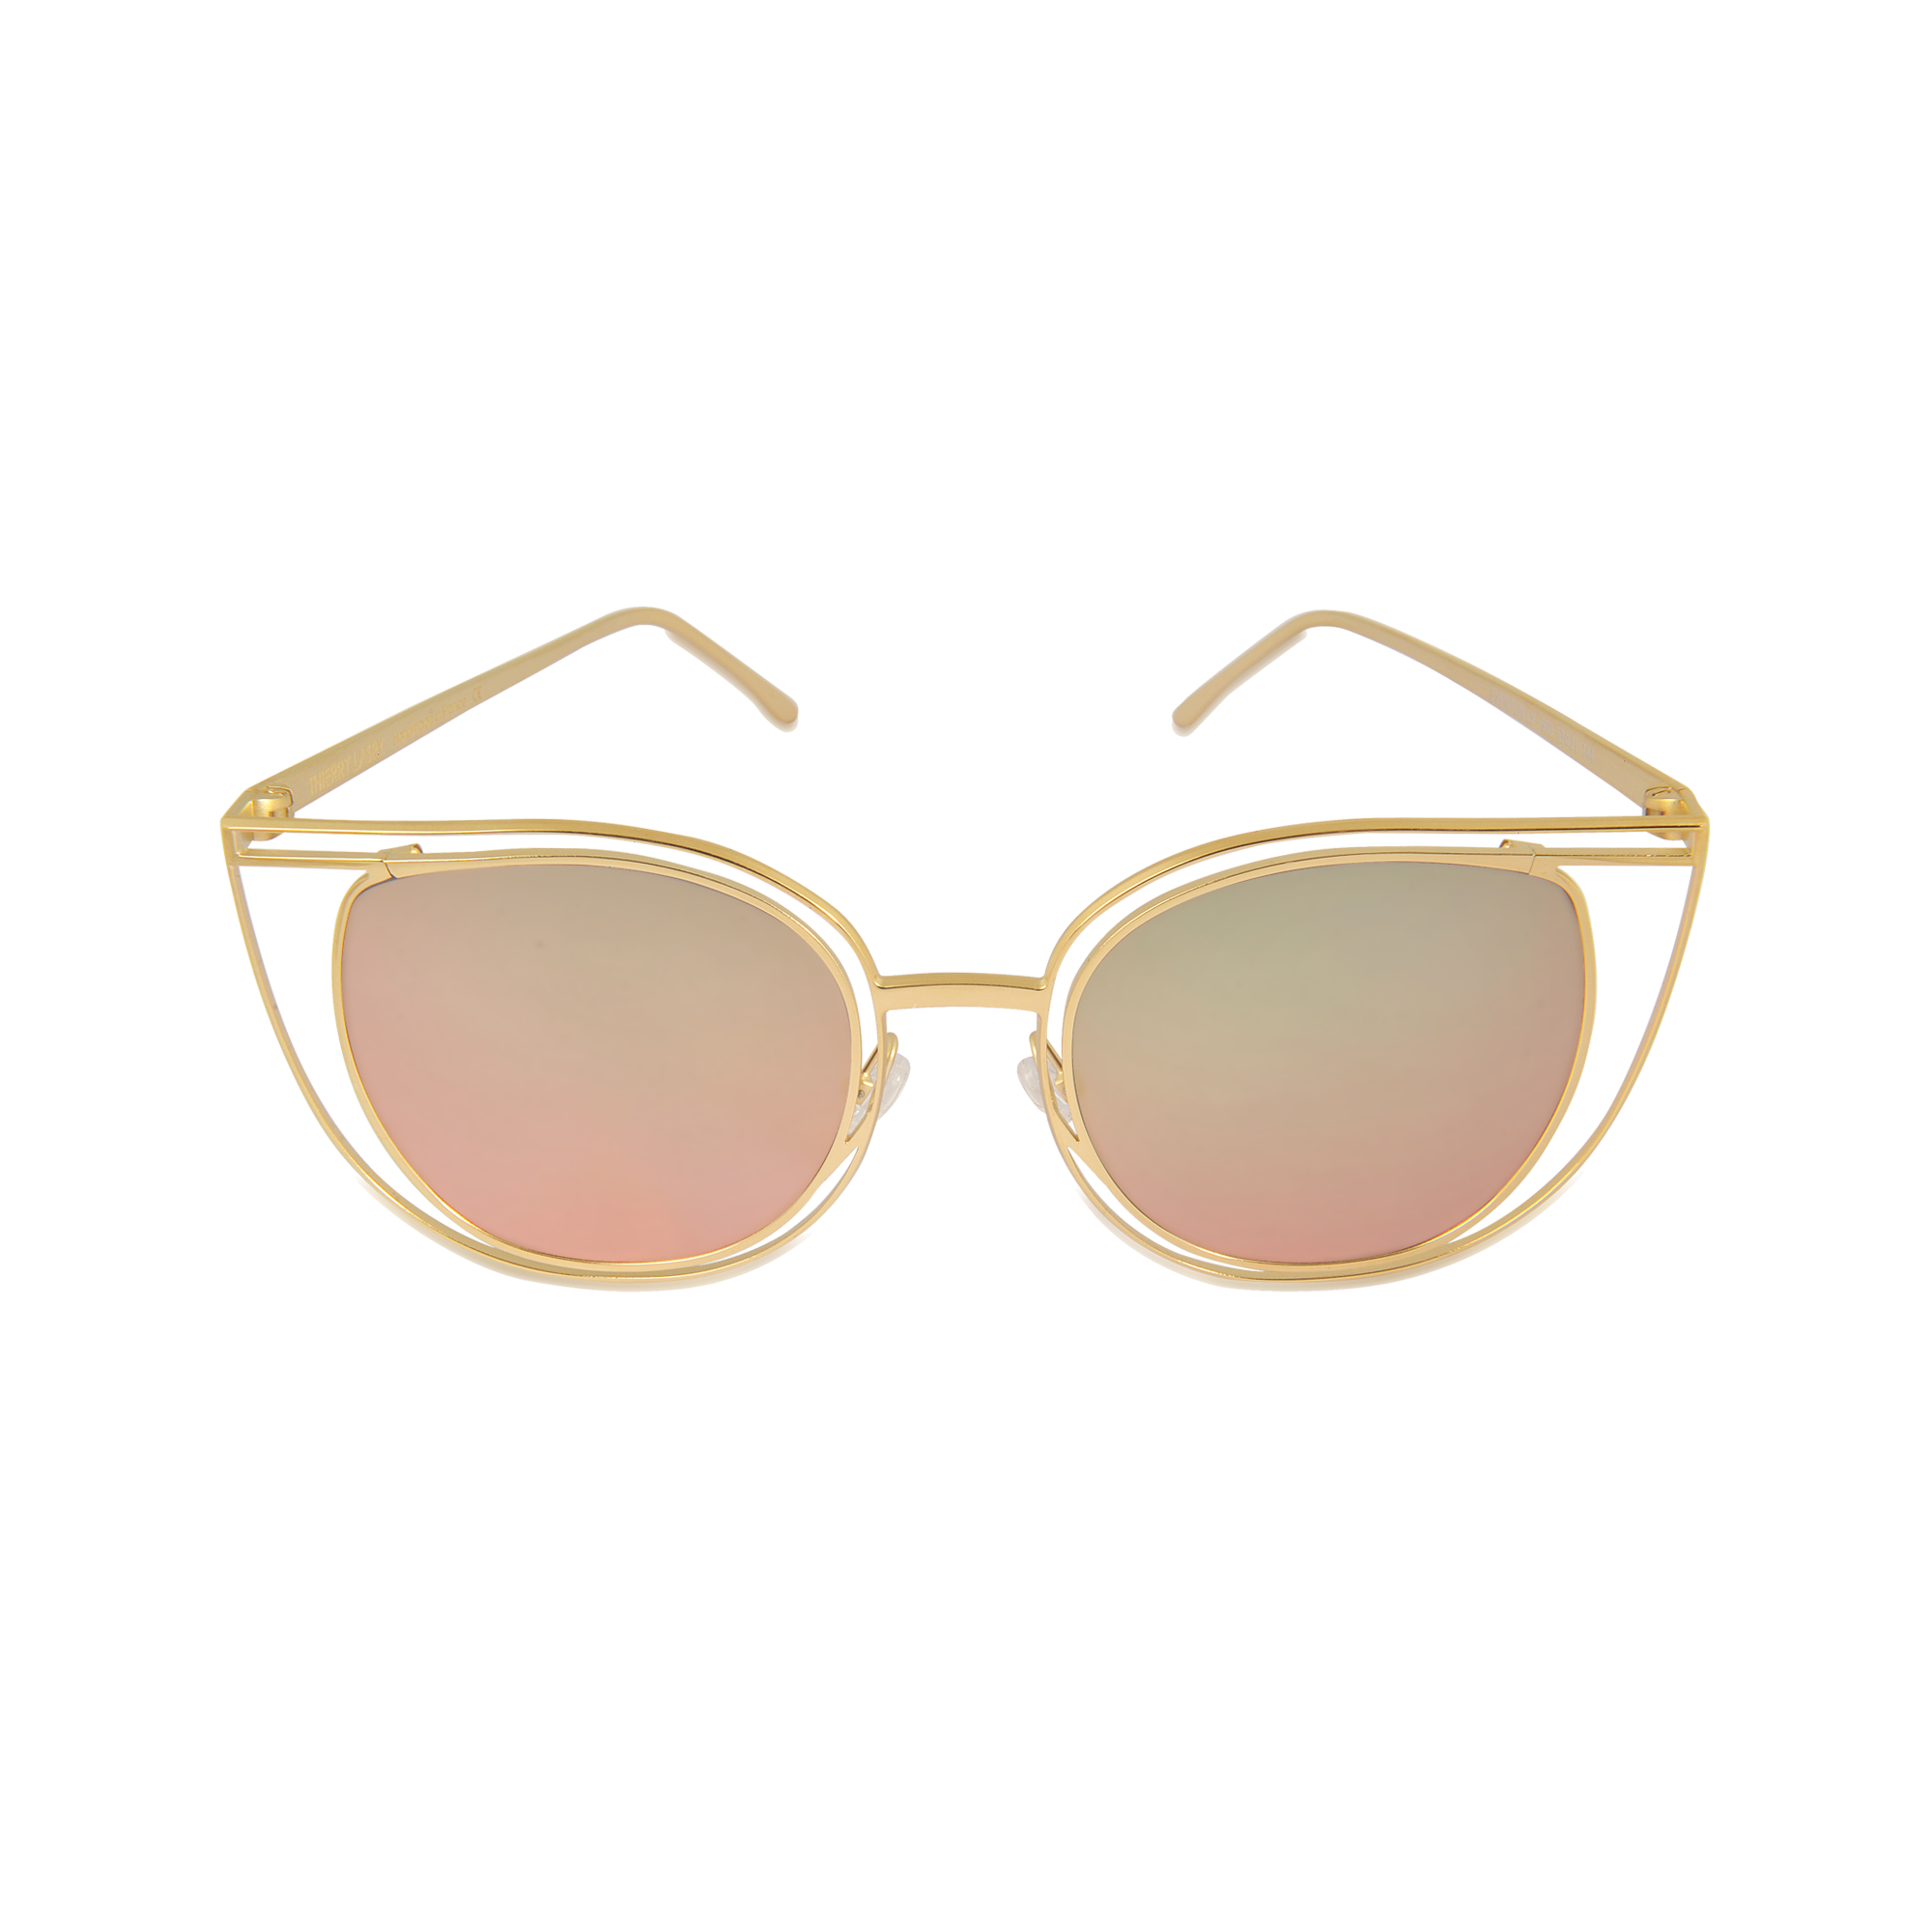 THIERRY LASRY Sunglassses Potentially 500